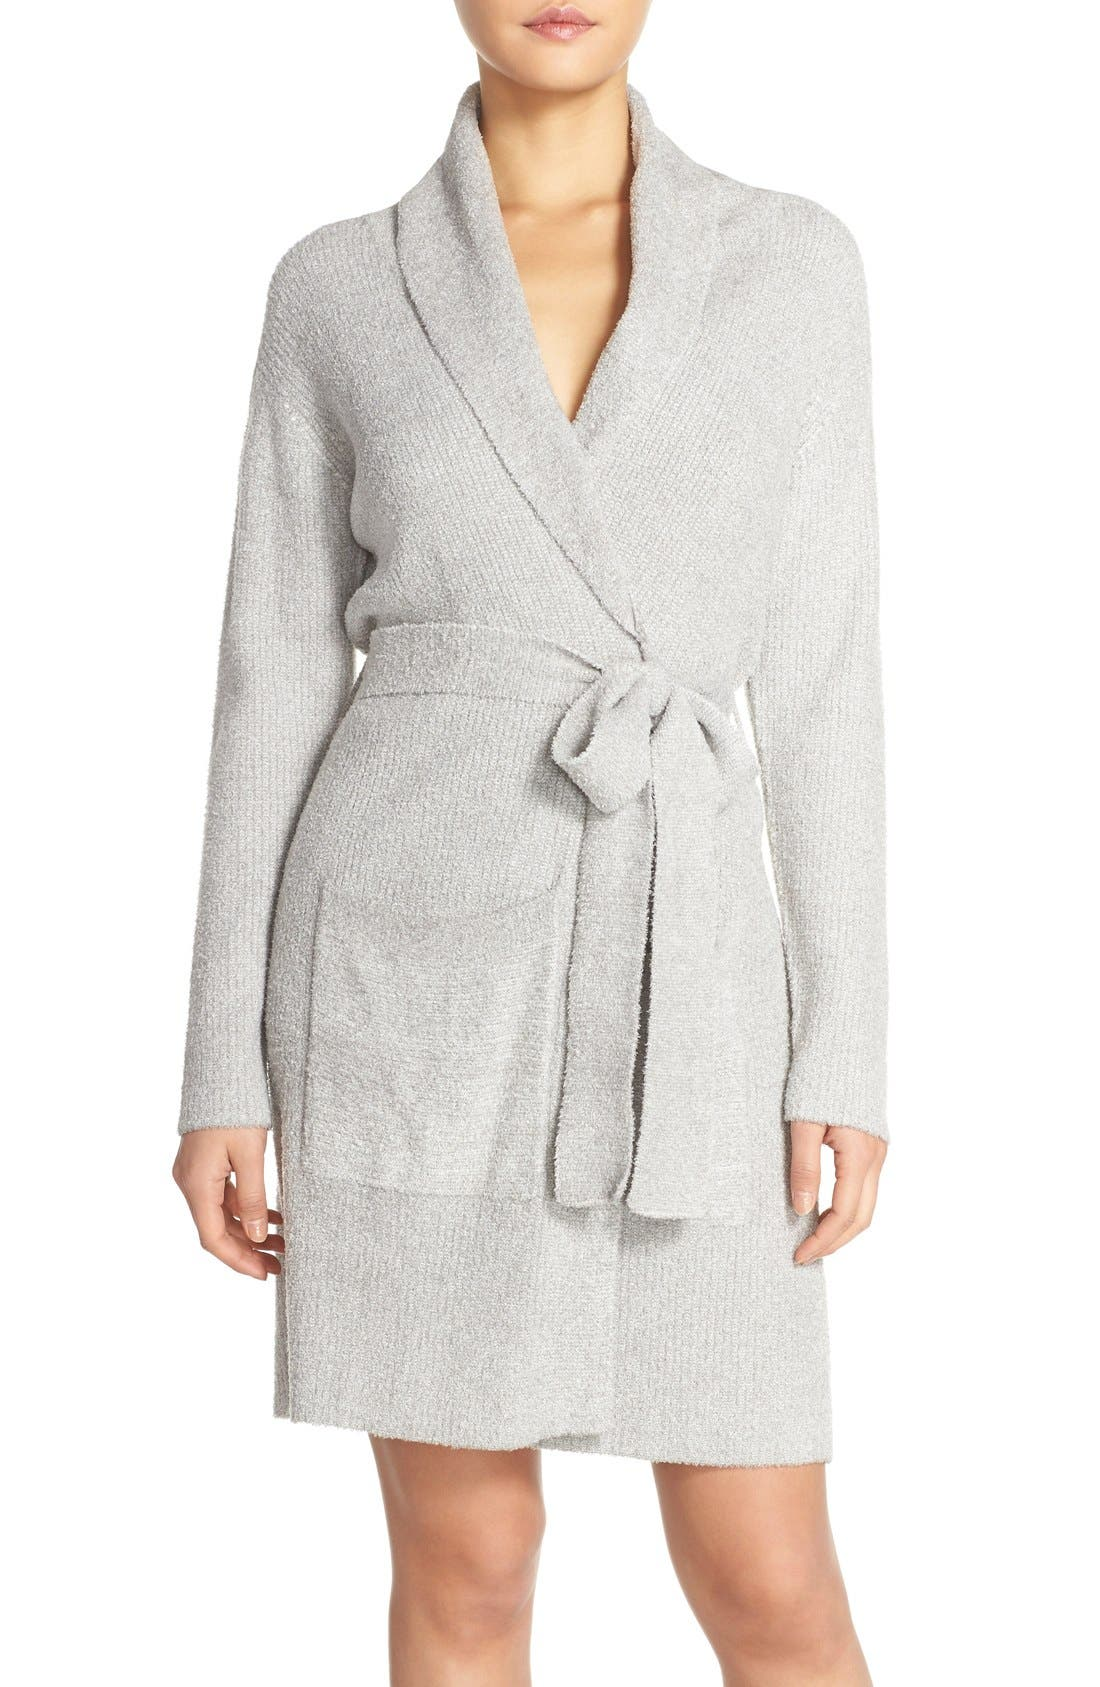 Barefoot Dreams CozyChic Lite® Short Robe